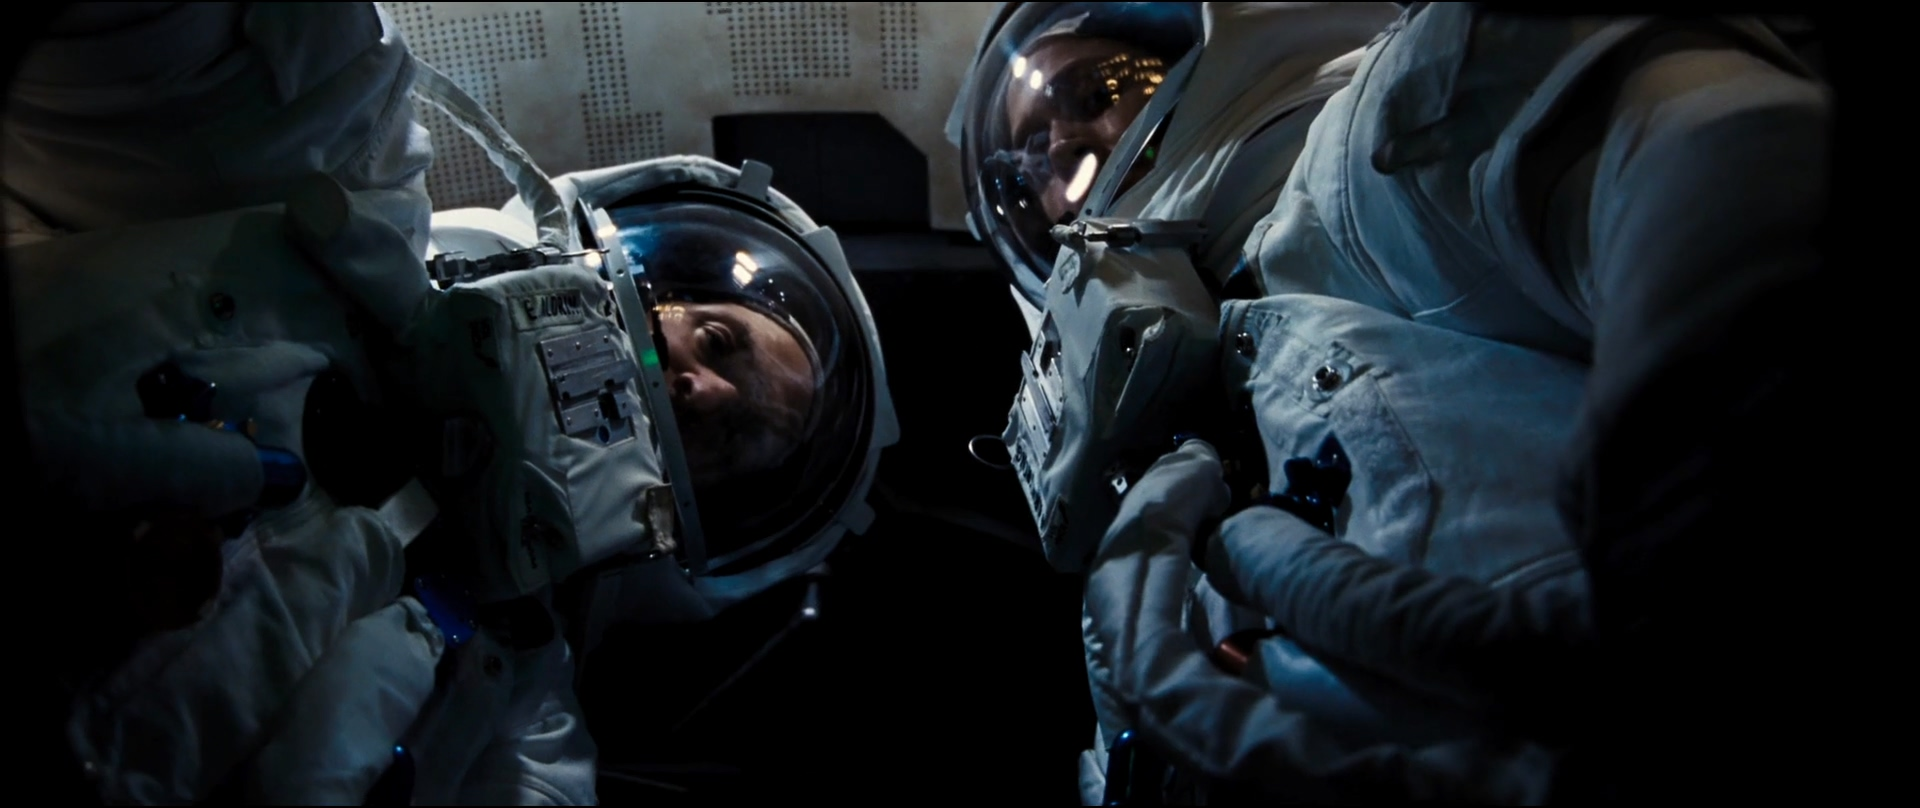 Ryan Gosling and Corey Stoll in First Man (2018)